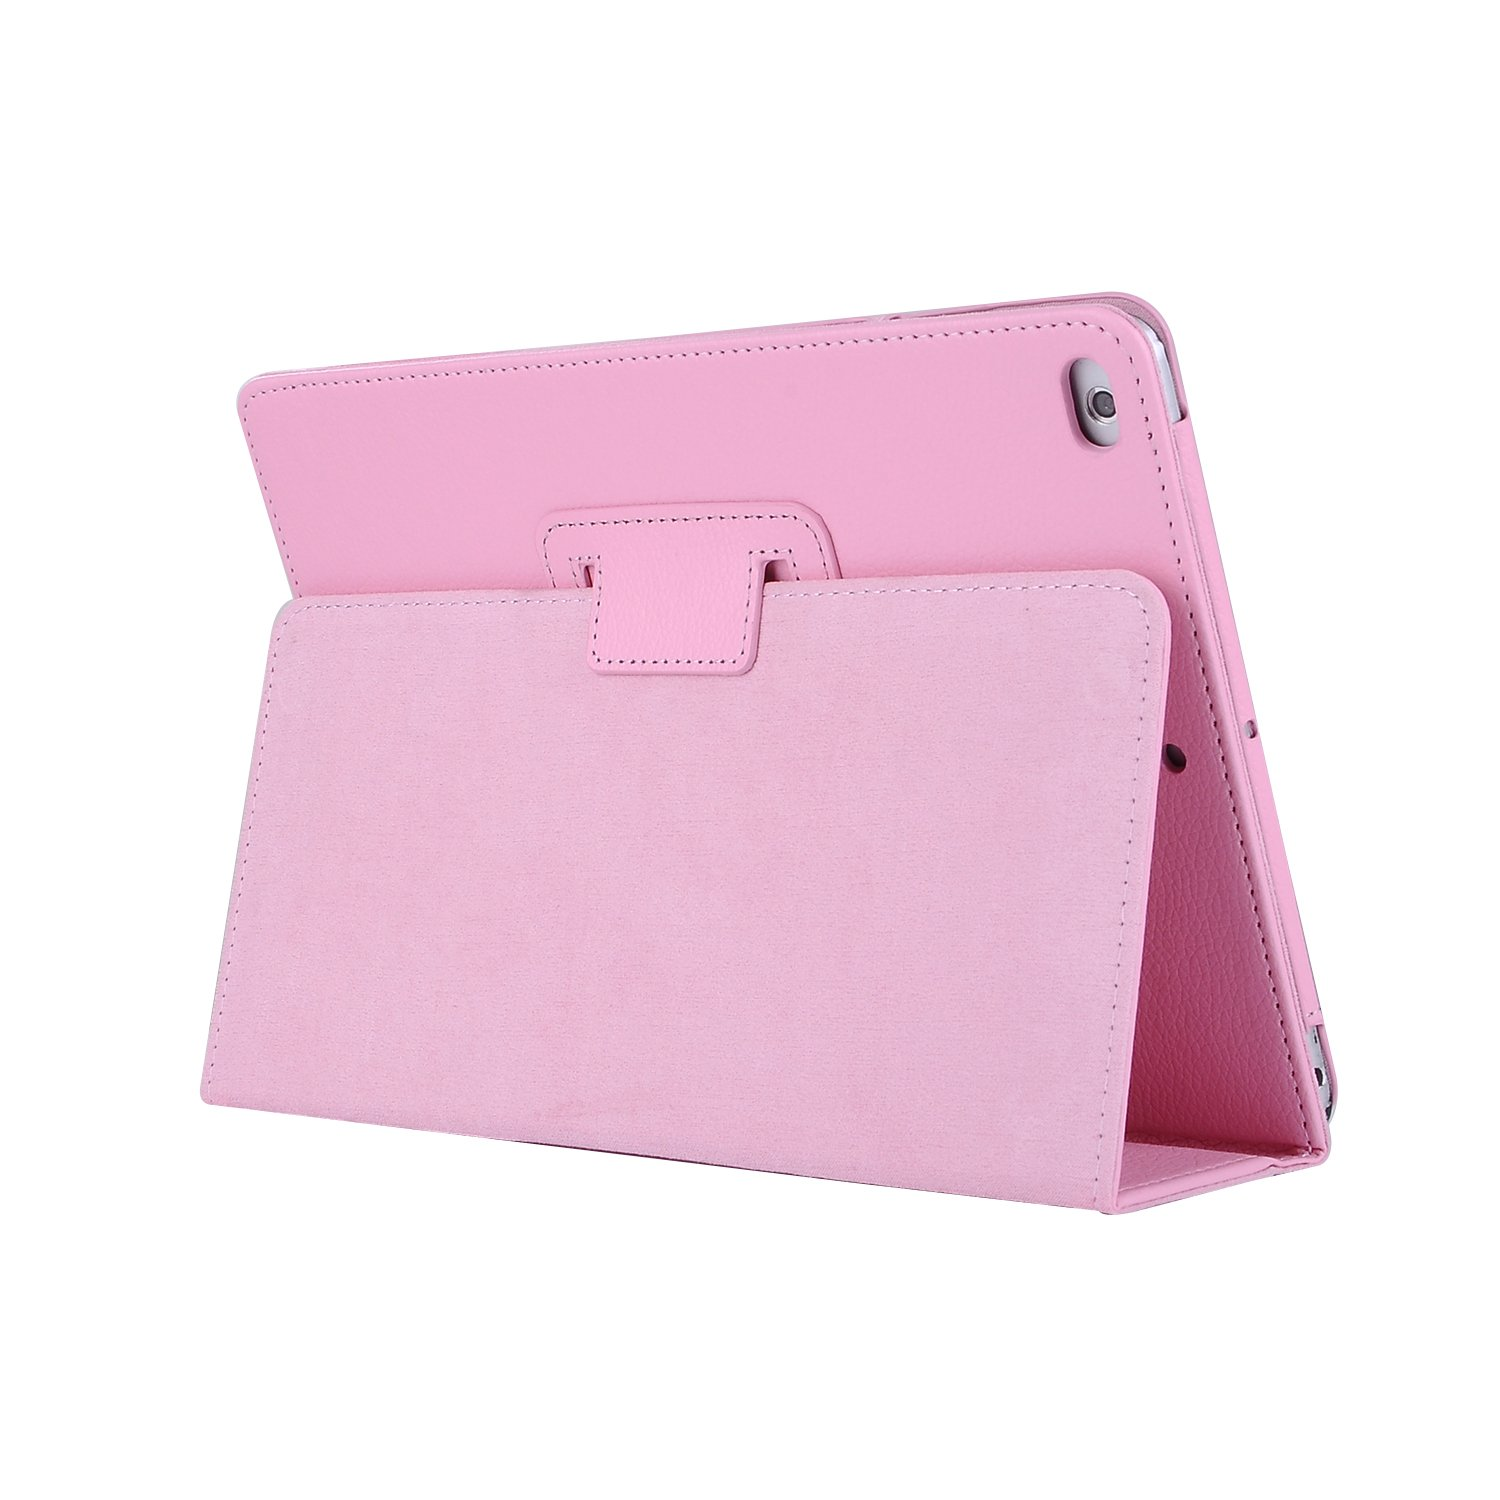 Case Capa Apple A2200 A2197 Foilo-Stand Tablet A2232 for iPad Cover Funda 7th